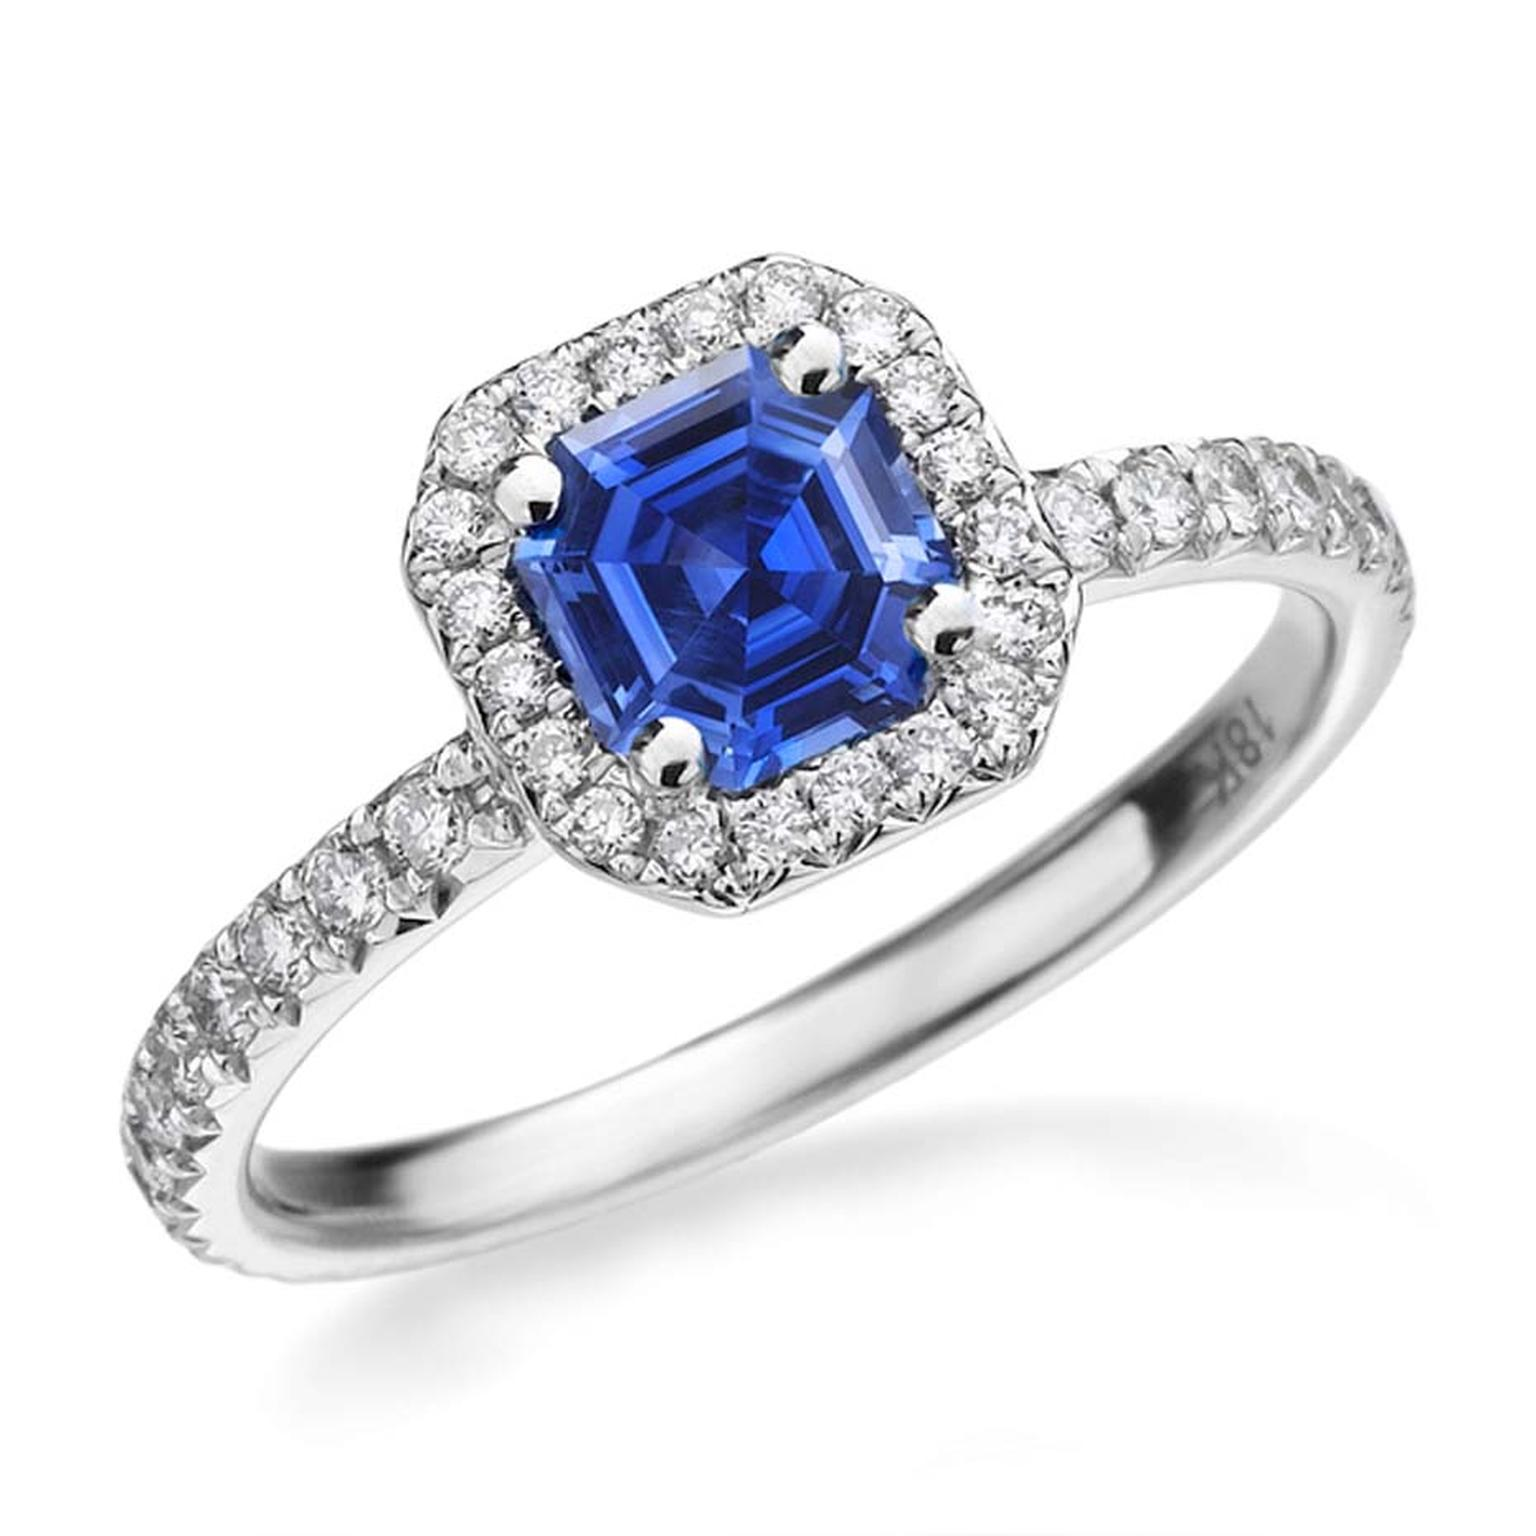 deep velvety recognize for royal is engagement rings world this sapphire stones the classic alternative most ring you blue which s may famous piece center stone of from